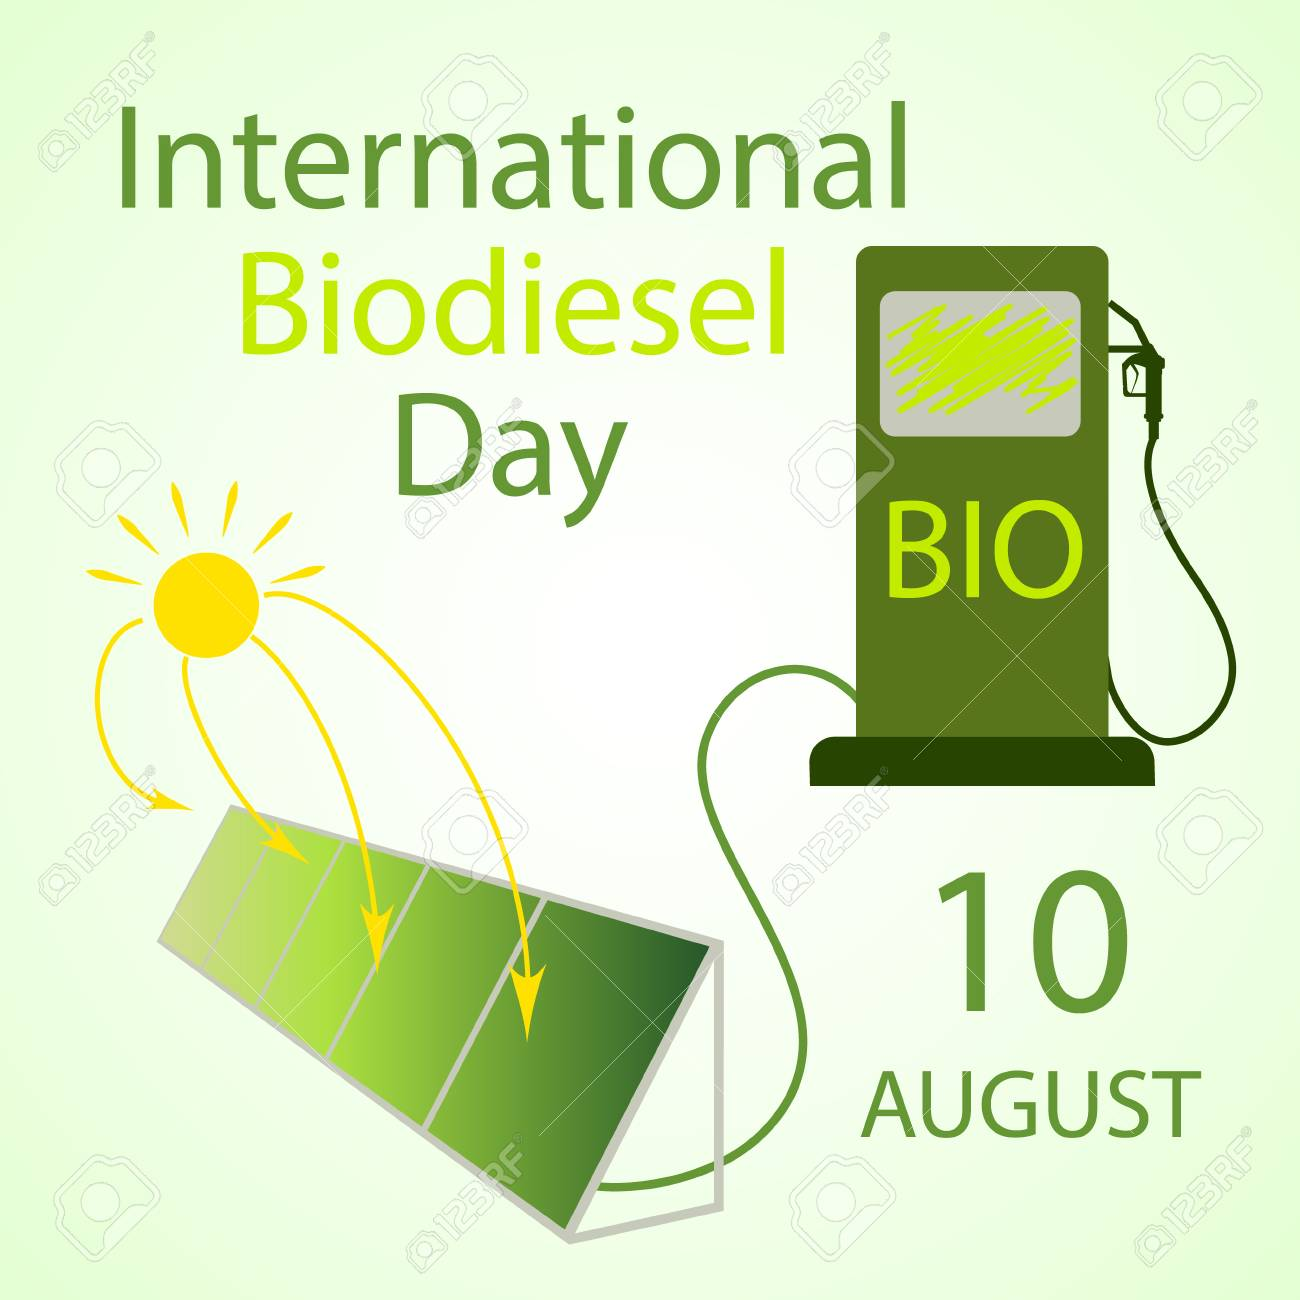 International Biodiseasel Day - 10 August  IMAGES, GIF, ANIMATED GIF, WALLPAPER, STICKER FOR WHATSAPP & FACEBOOK